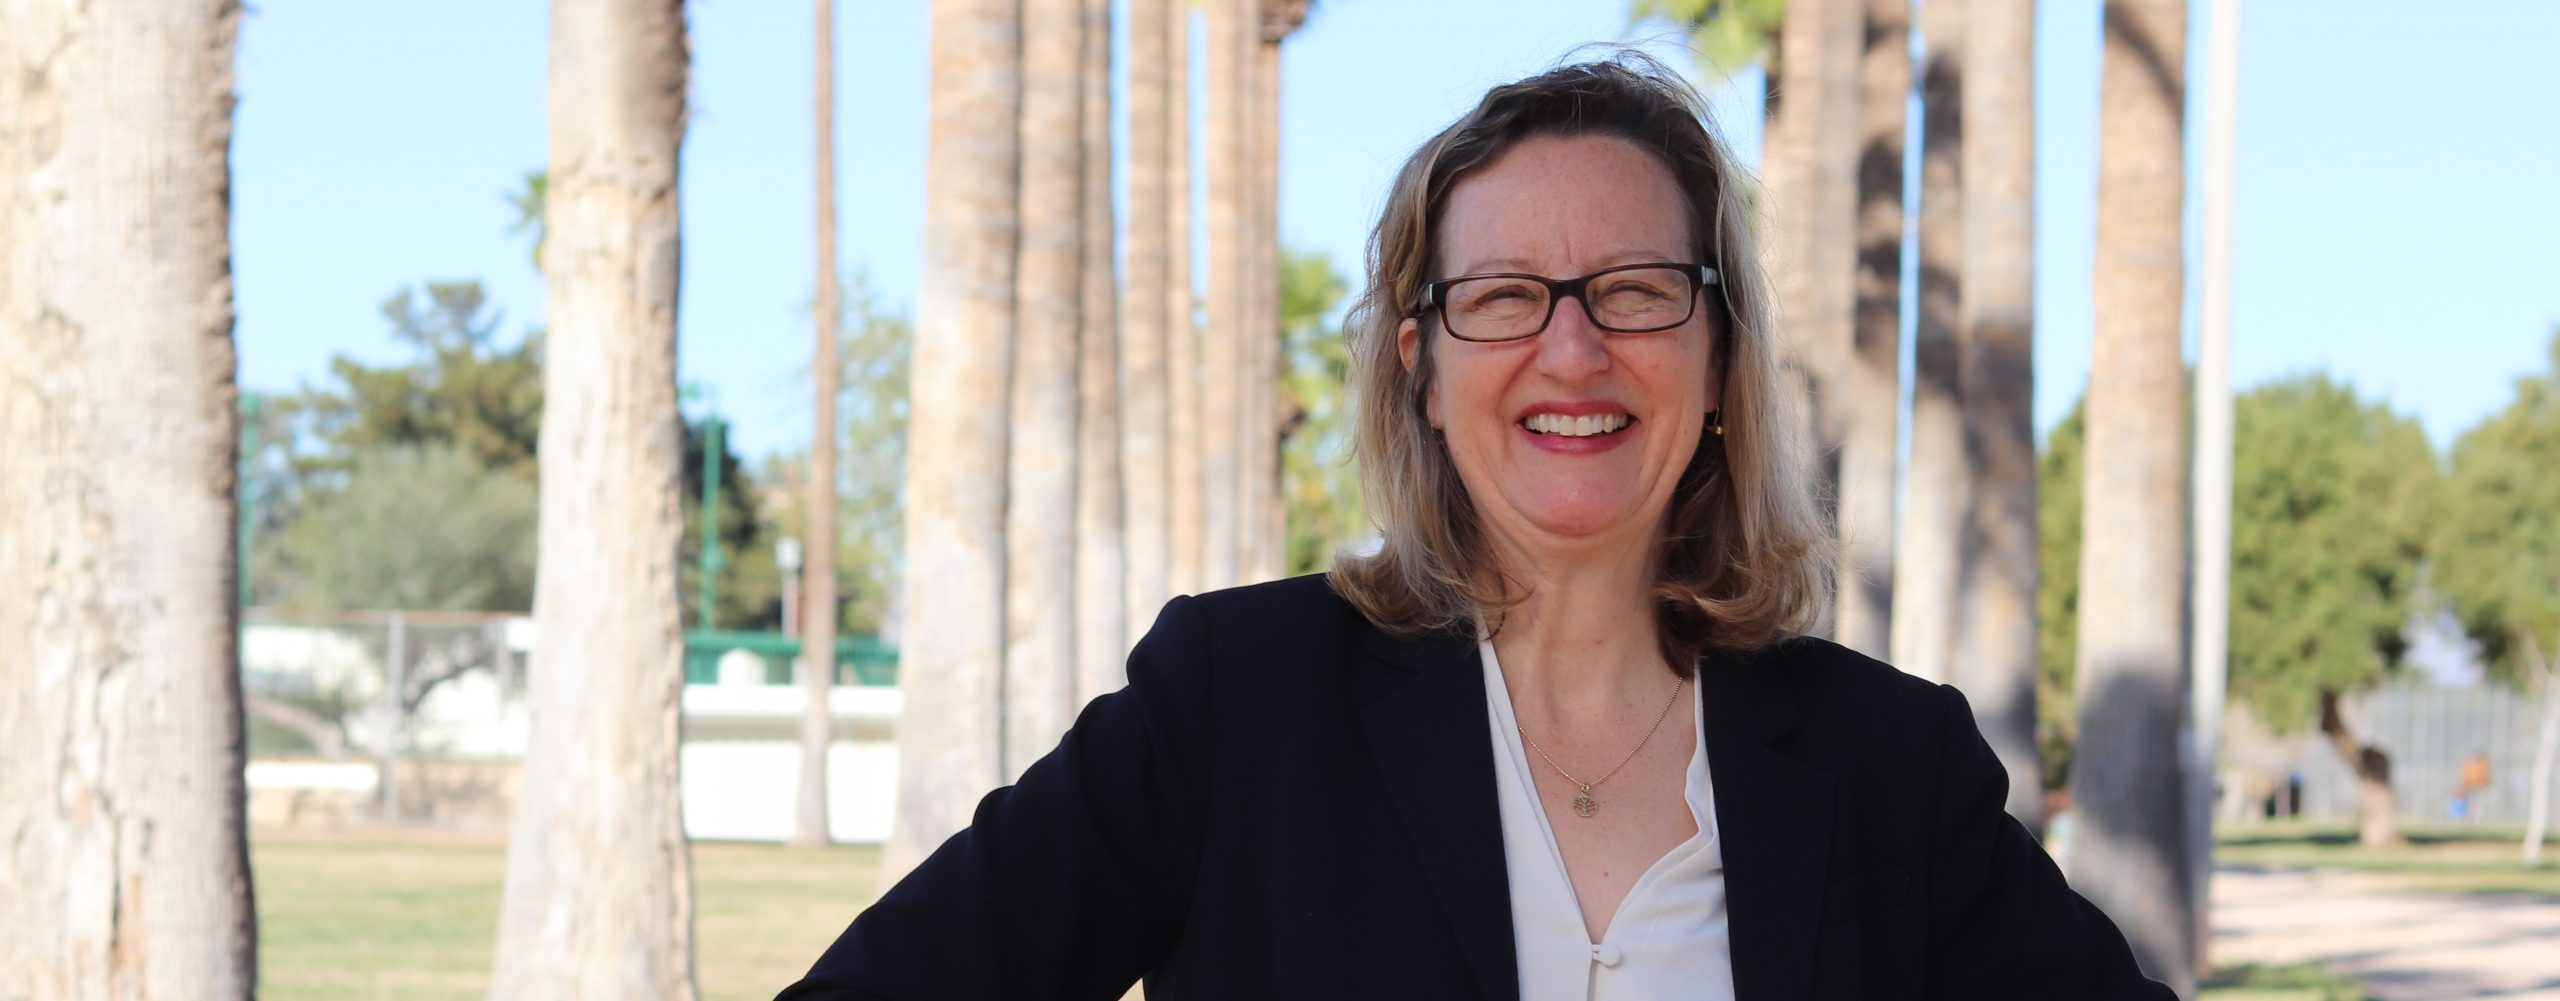 SEE: Kirsten Engel for AZ Senate, speaking at DGT on October 5, 2020